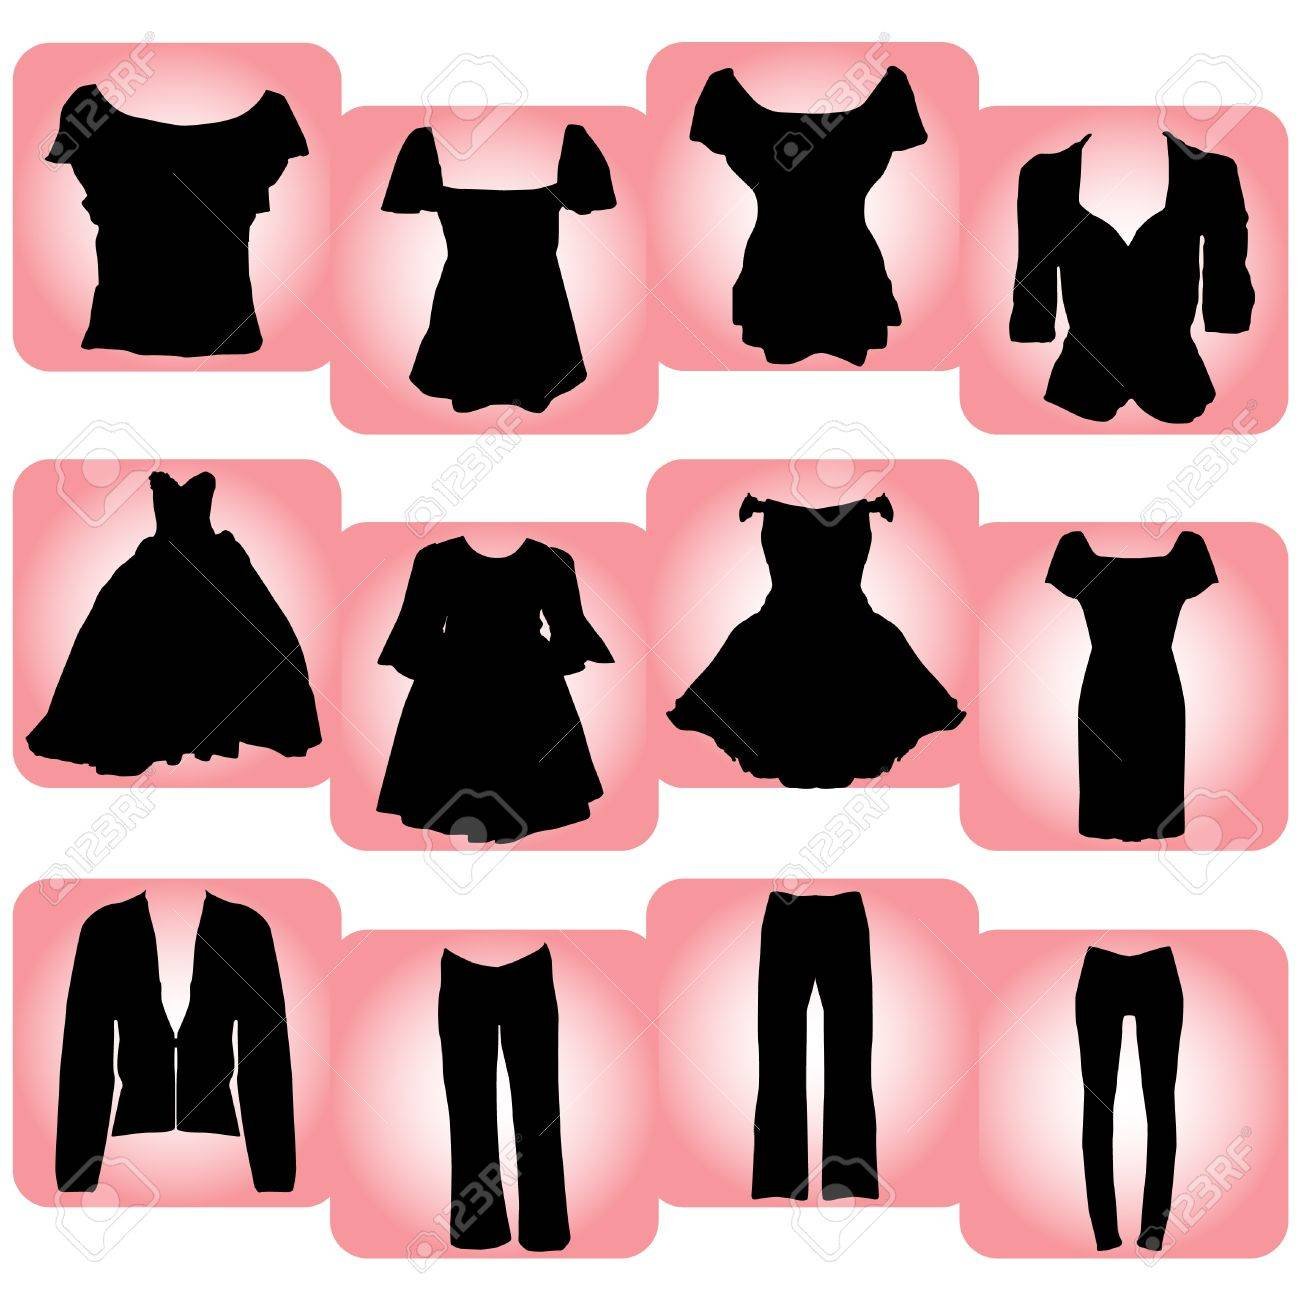 Fashion for women clip art - Women S Fashion Womens Clothes Illustration